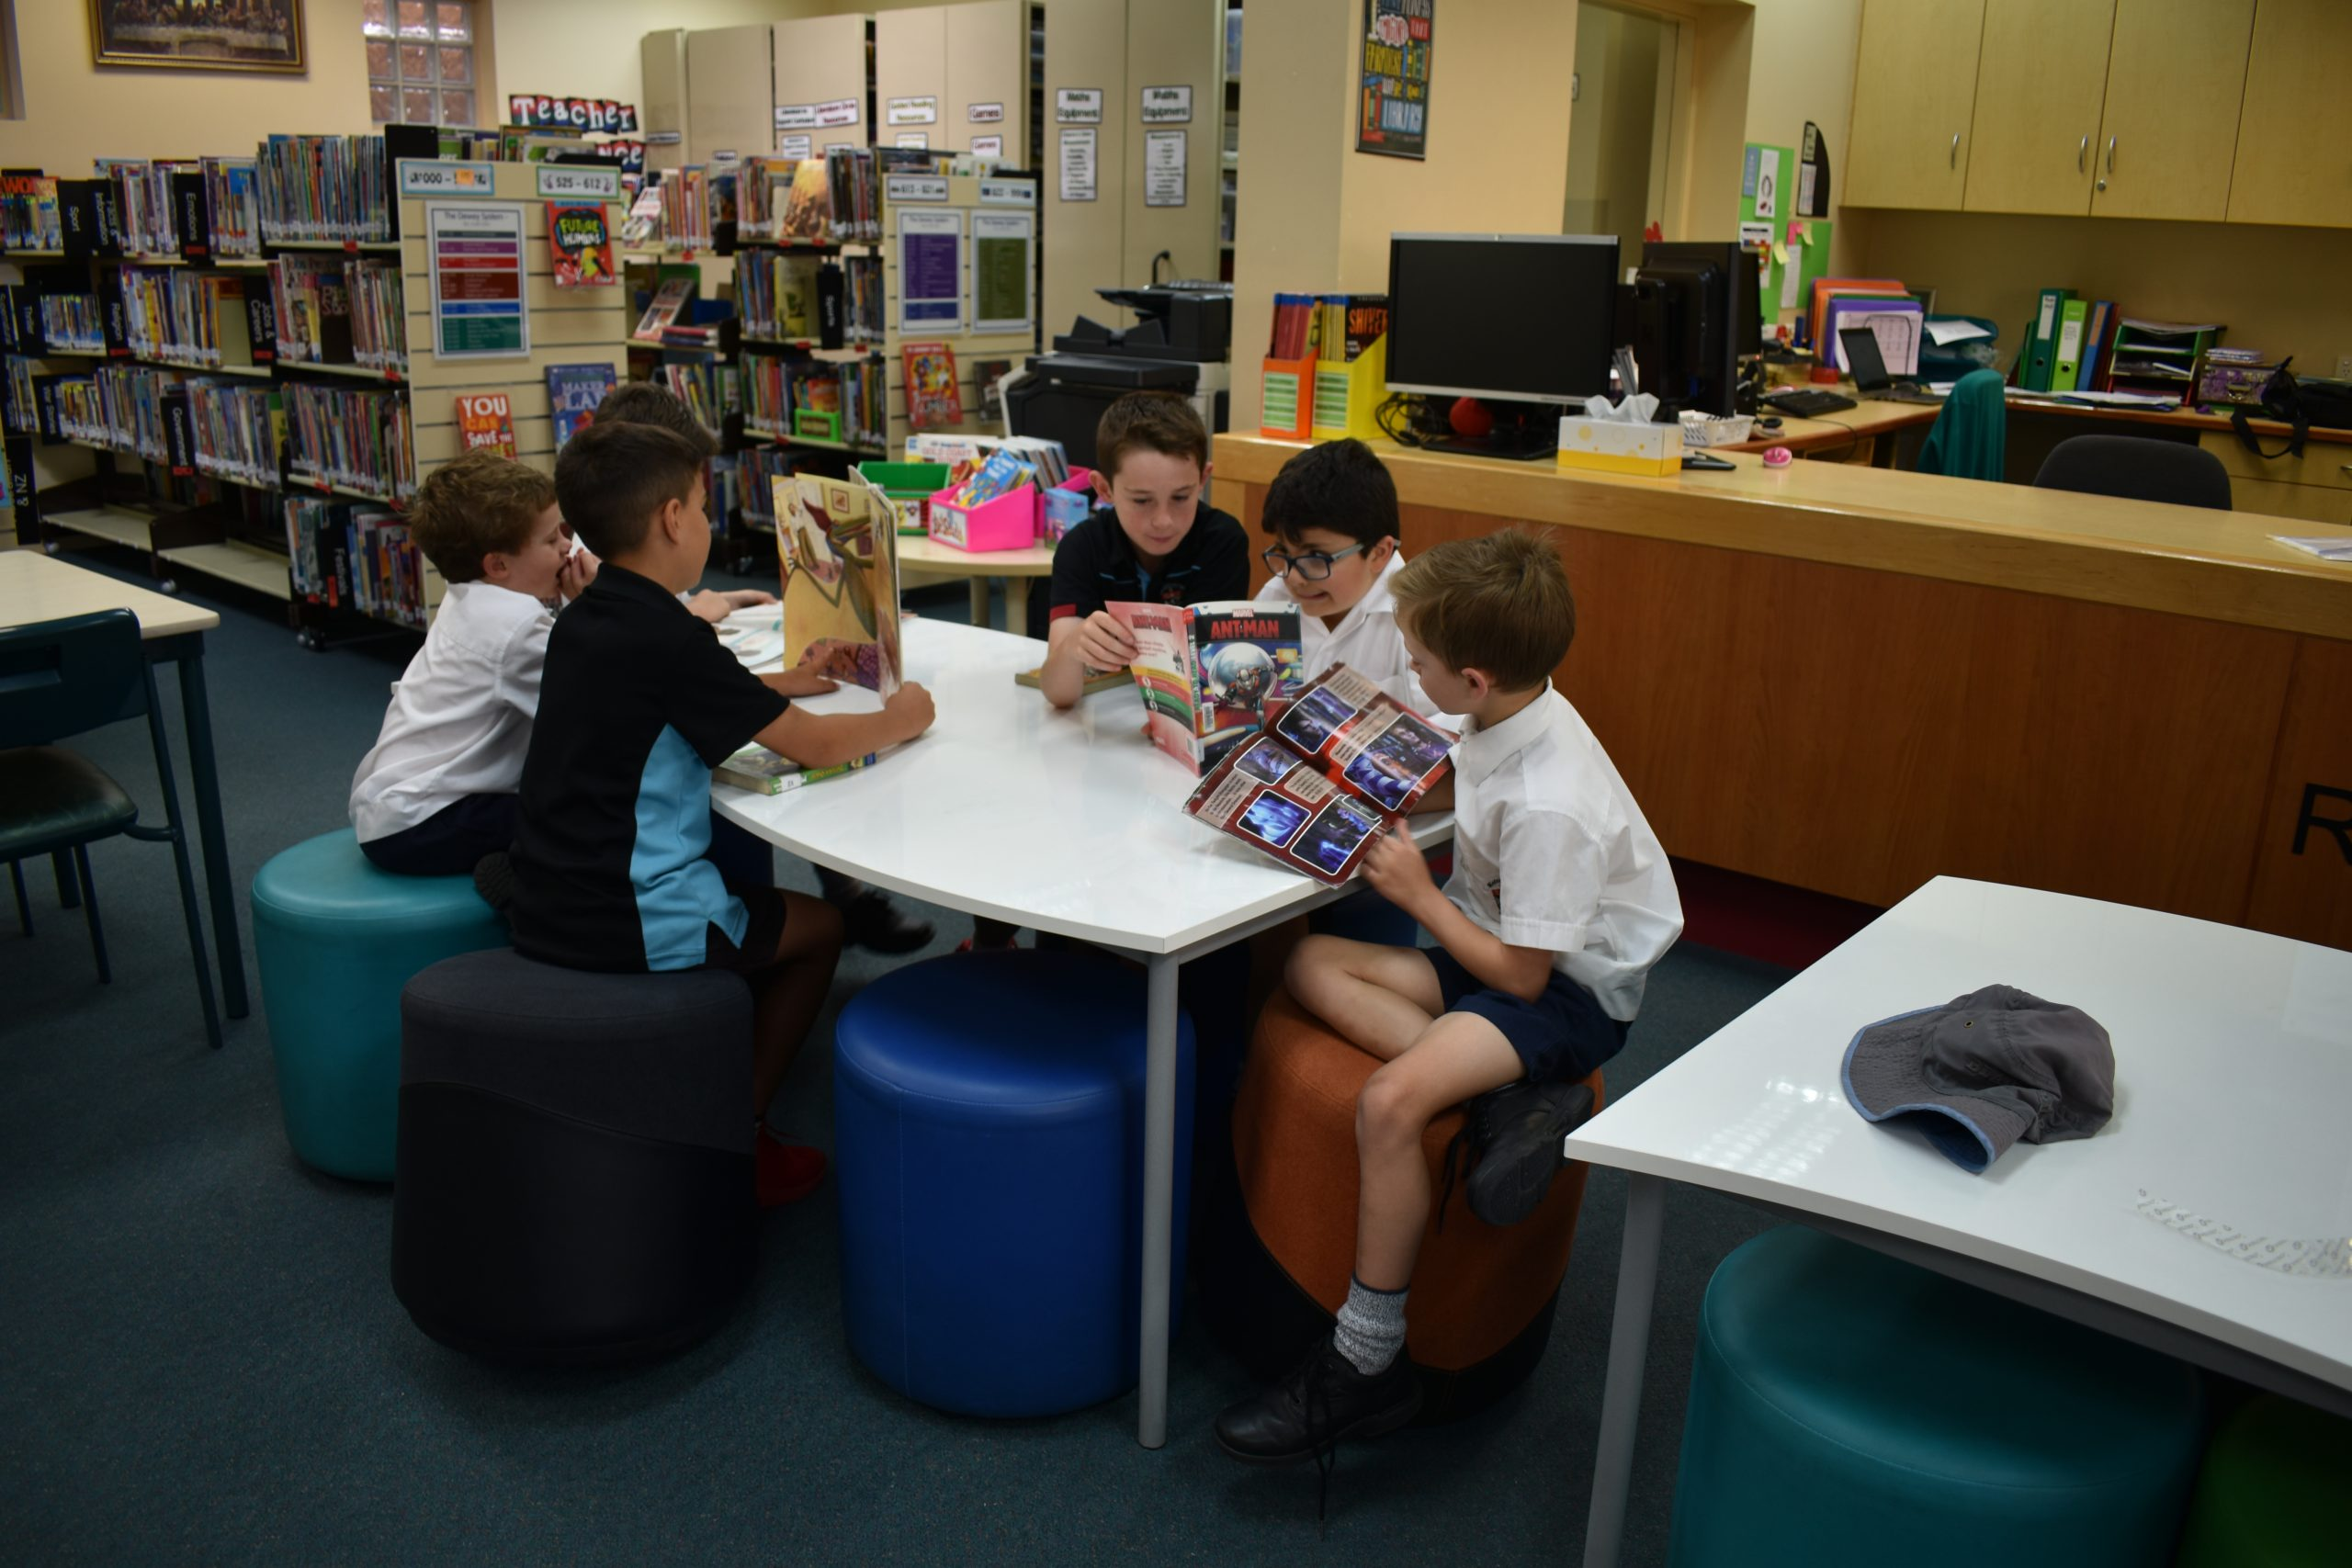 Primary boys reading in library